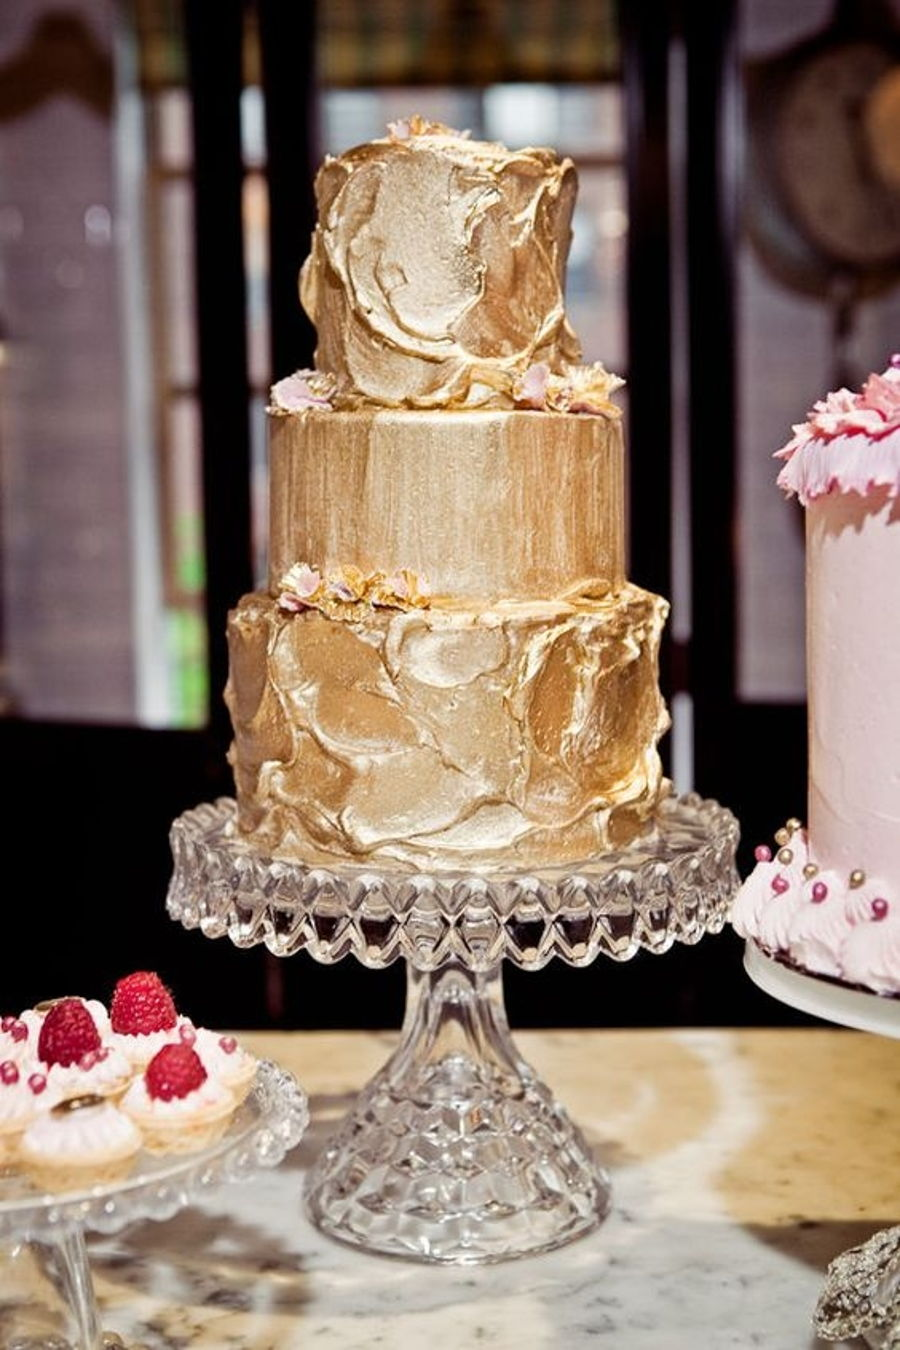 900_metallic-gold-buttercream_94612656da6e02ba0b7.jpg